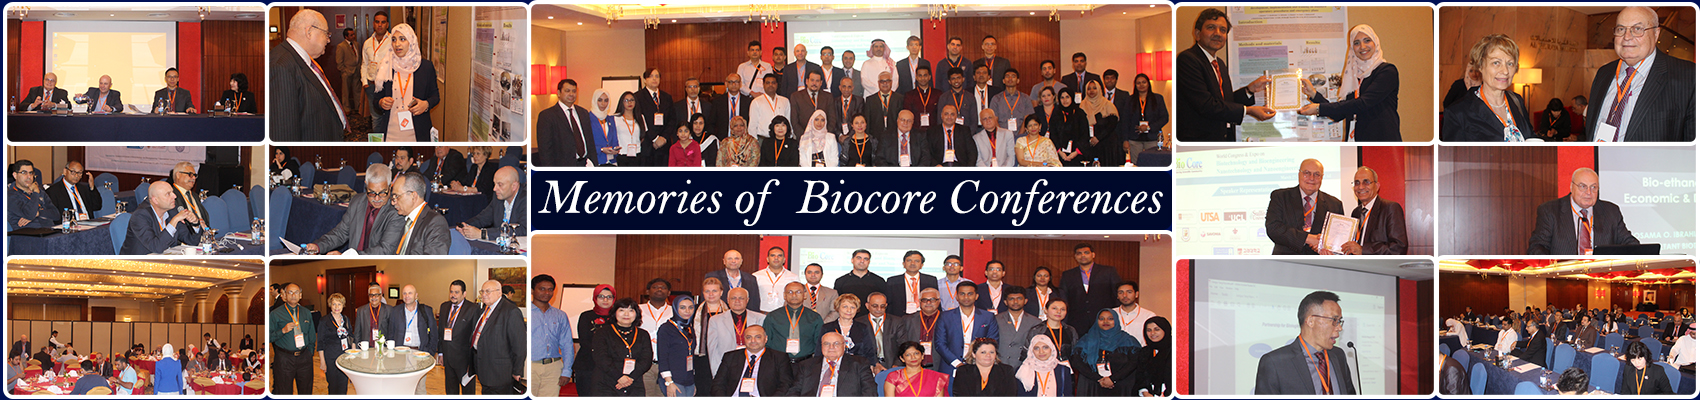 Biocore Conferences Gallery